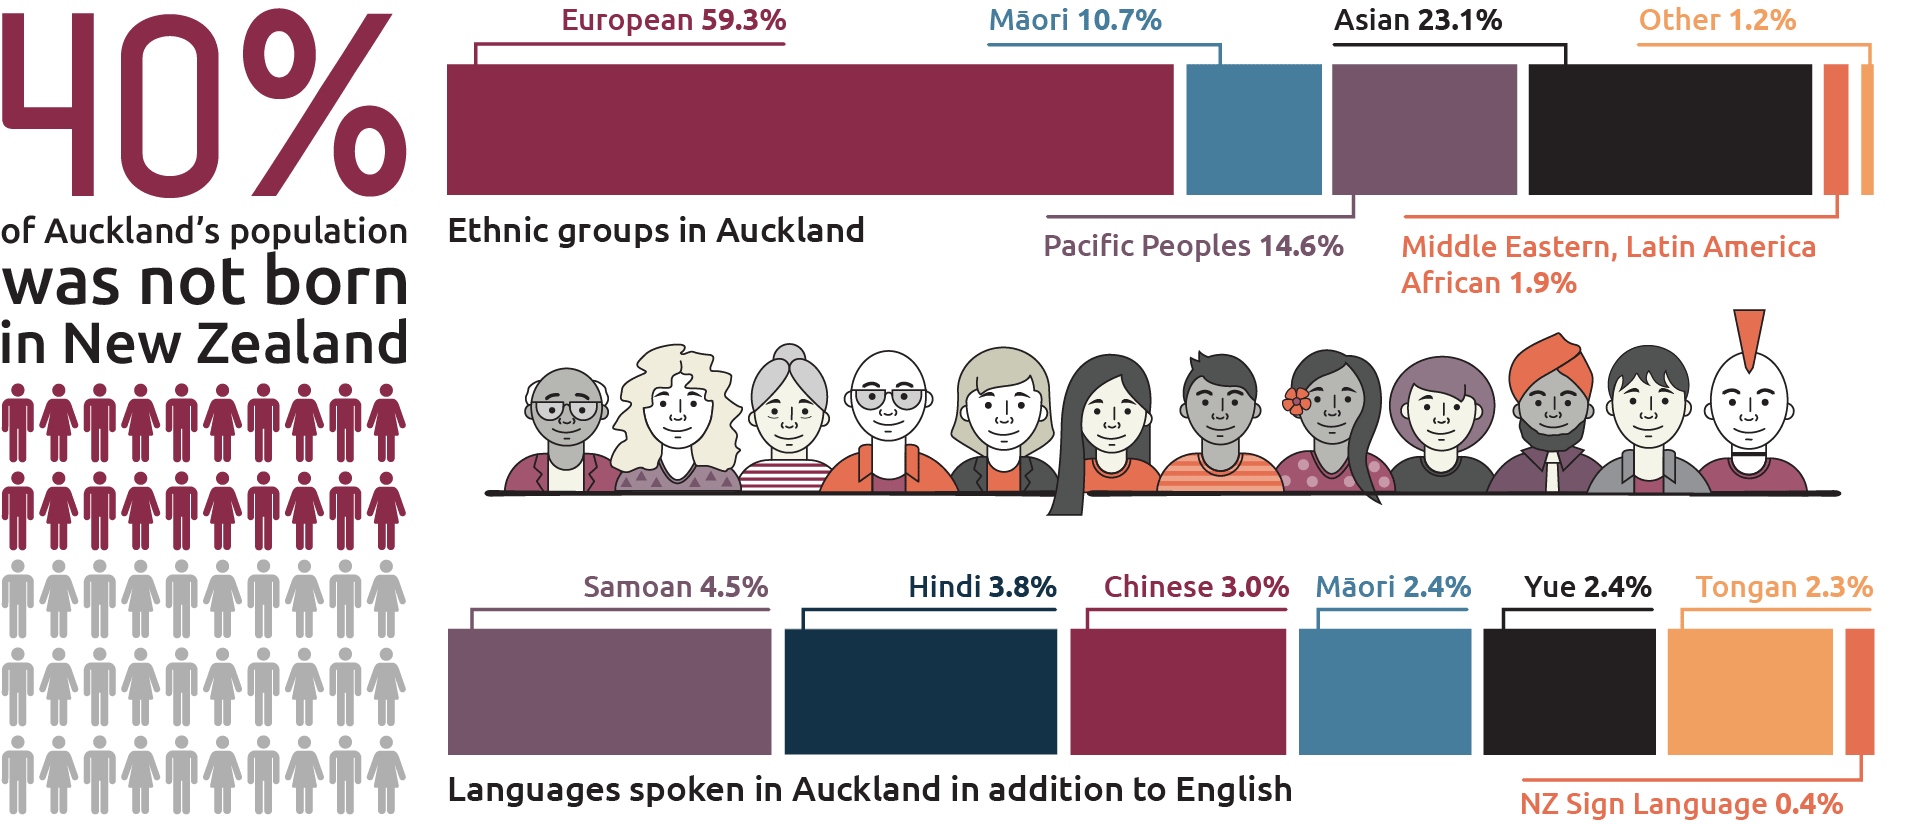 Graphic showing ethnic groups. Auckland is 59 per cent European, 11 per cent Maori, 15 per cent pacific peoples, 23 per cent Asian, 2 per cent Middle Eastern, Latin American, African, 1 per cent other.